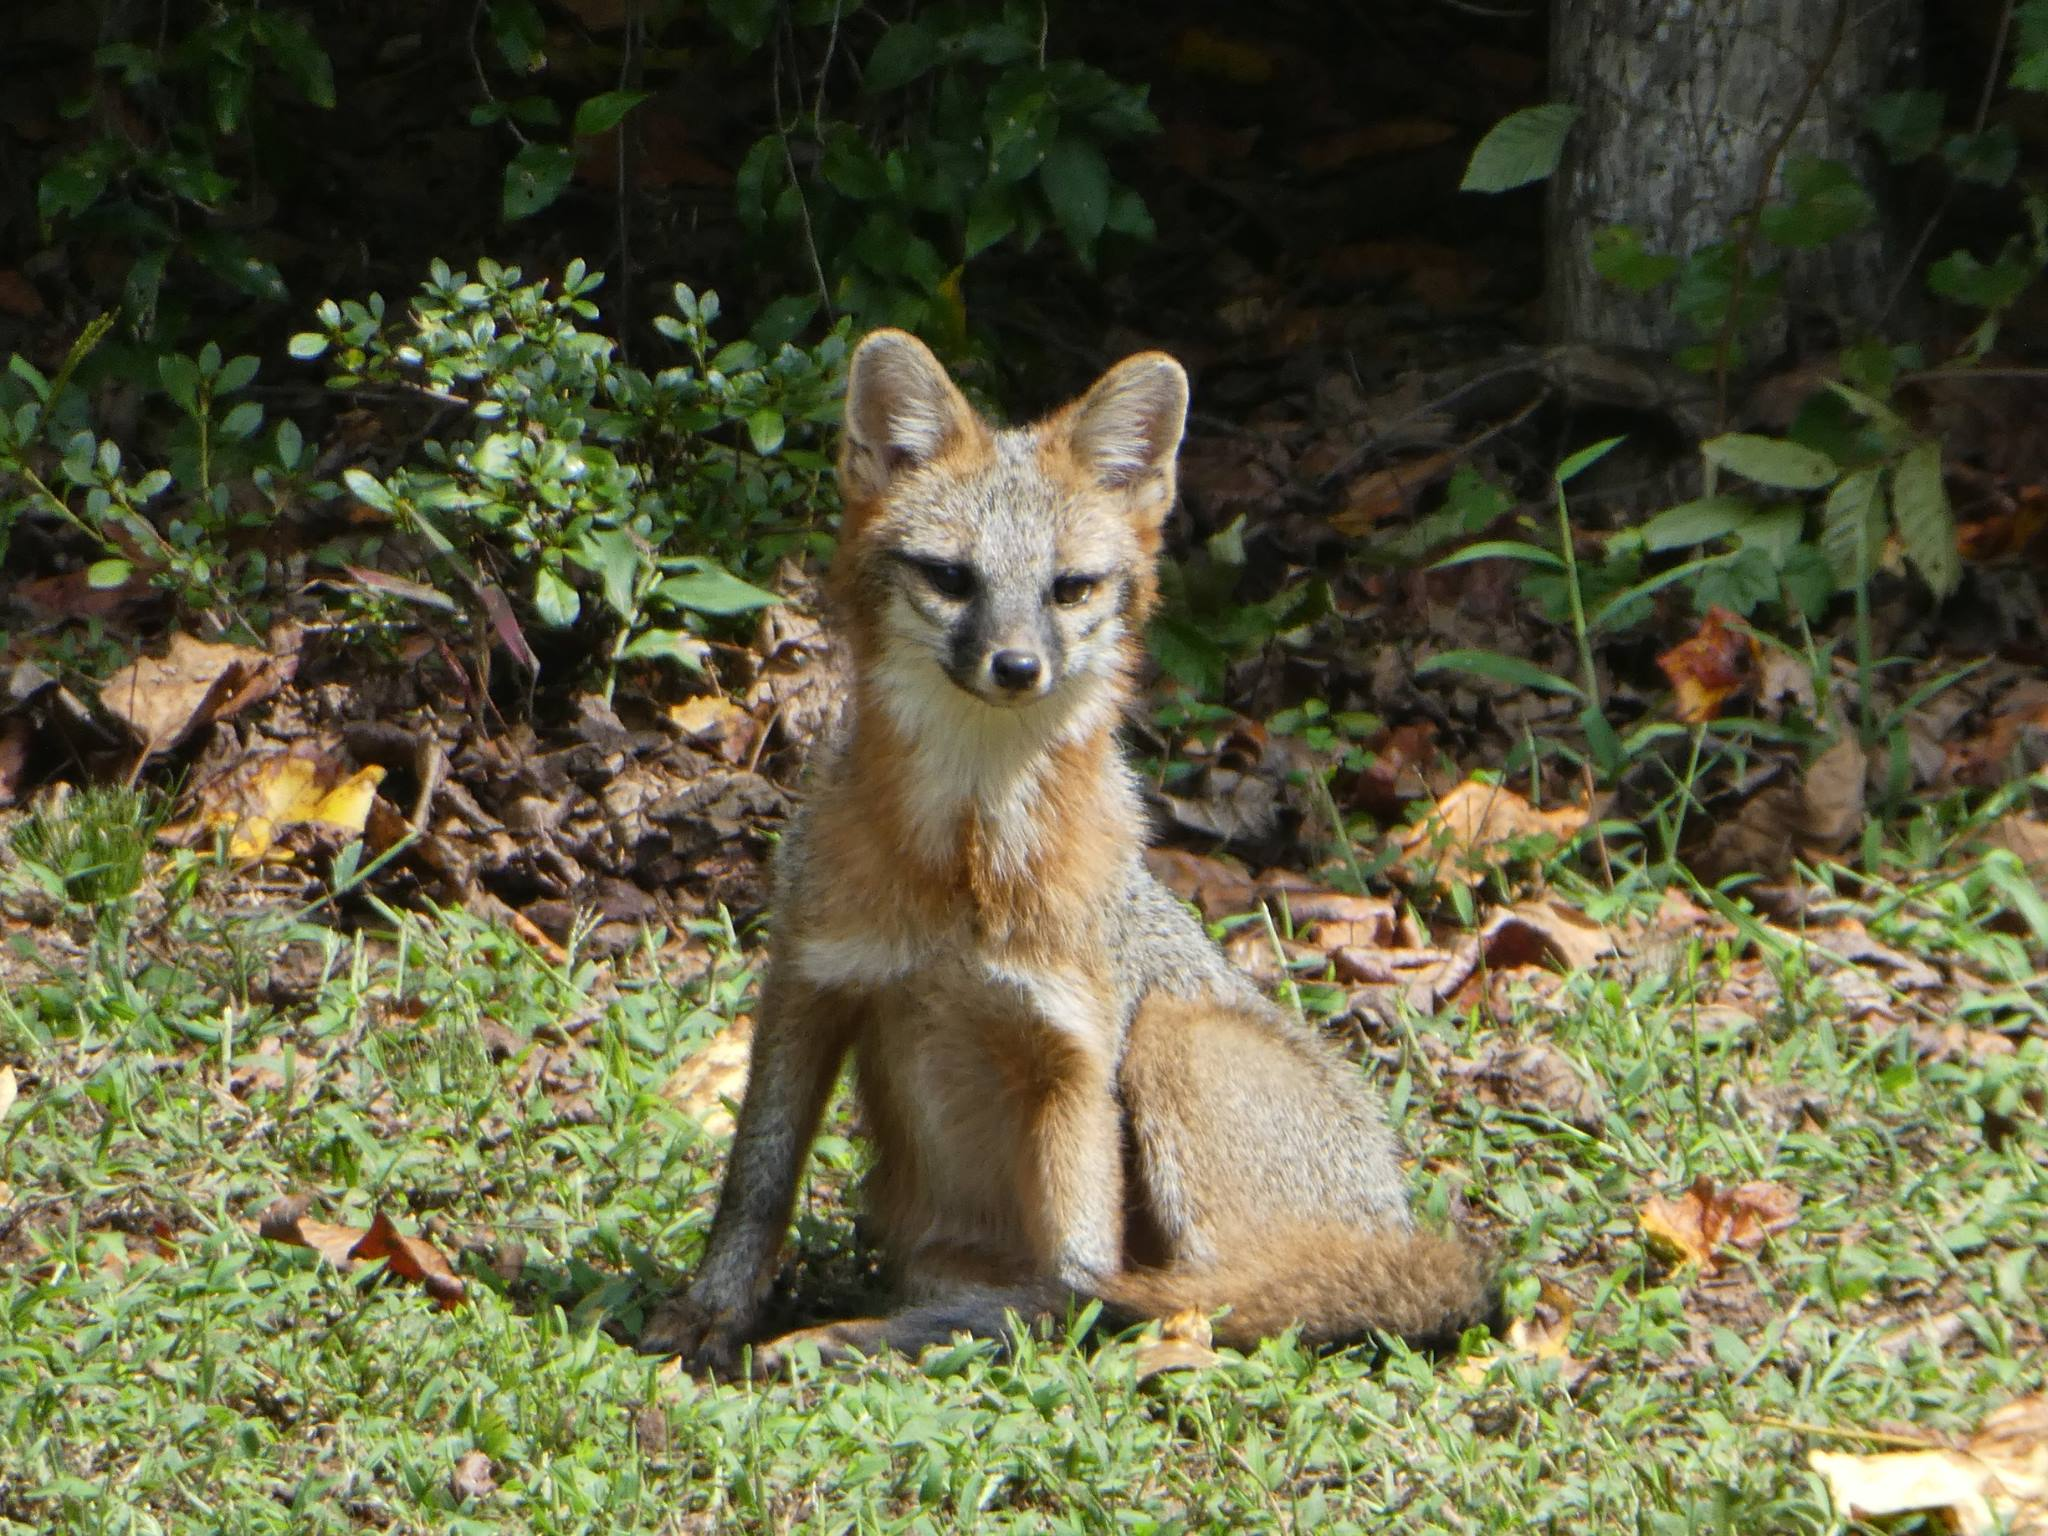 This juvenile gray fox lives near Dr. Kev's house with its sibling and mother.